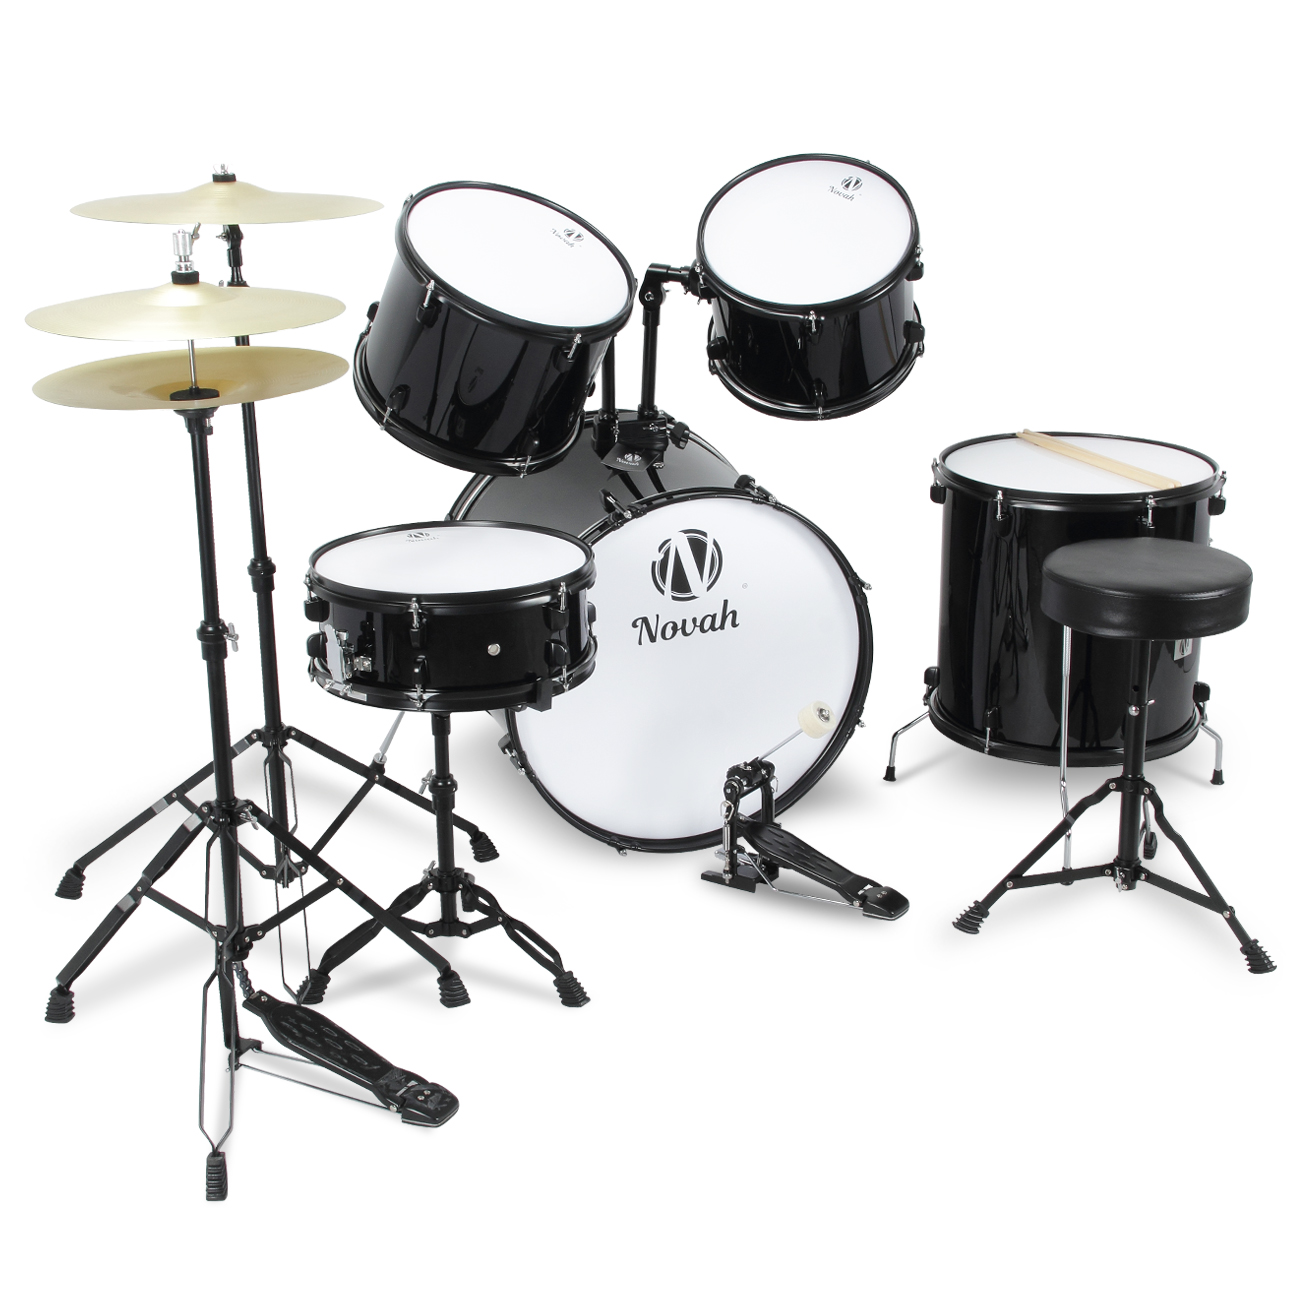 Novah Premium Full Size Complete Adult 5 Piece Drum Set Cymbals